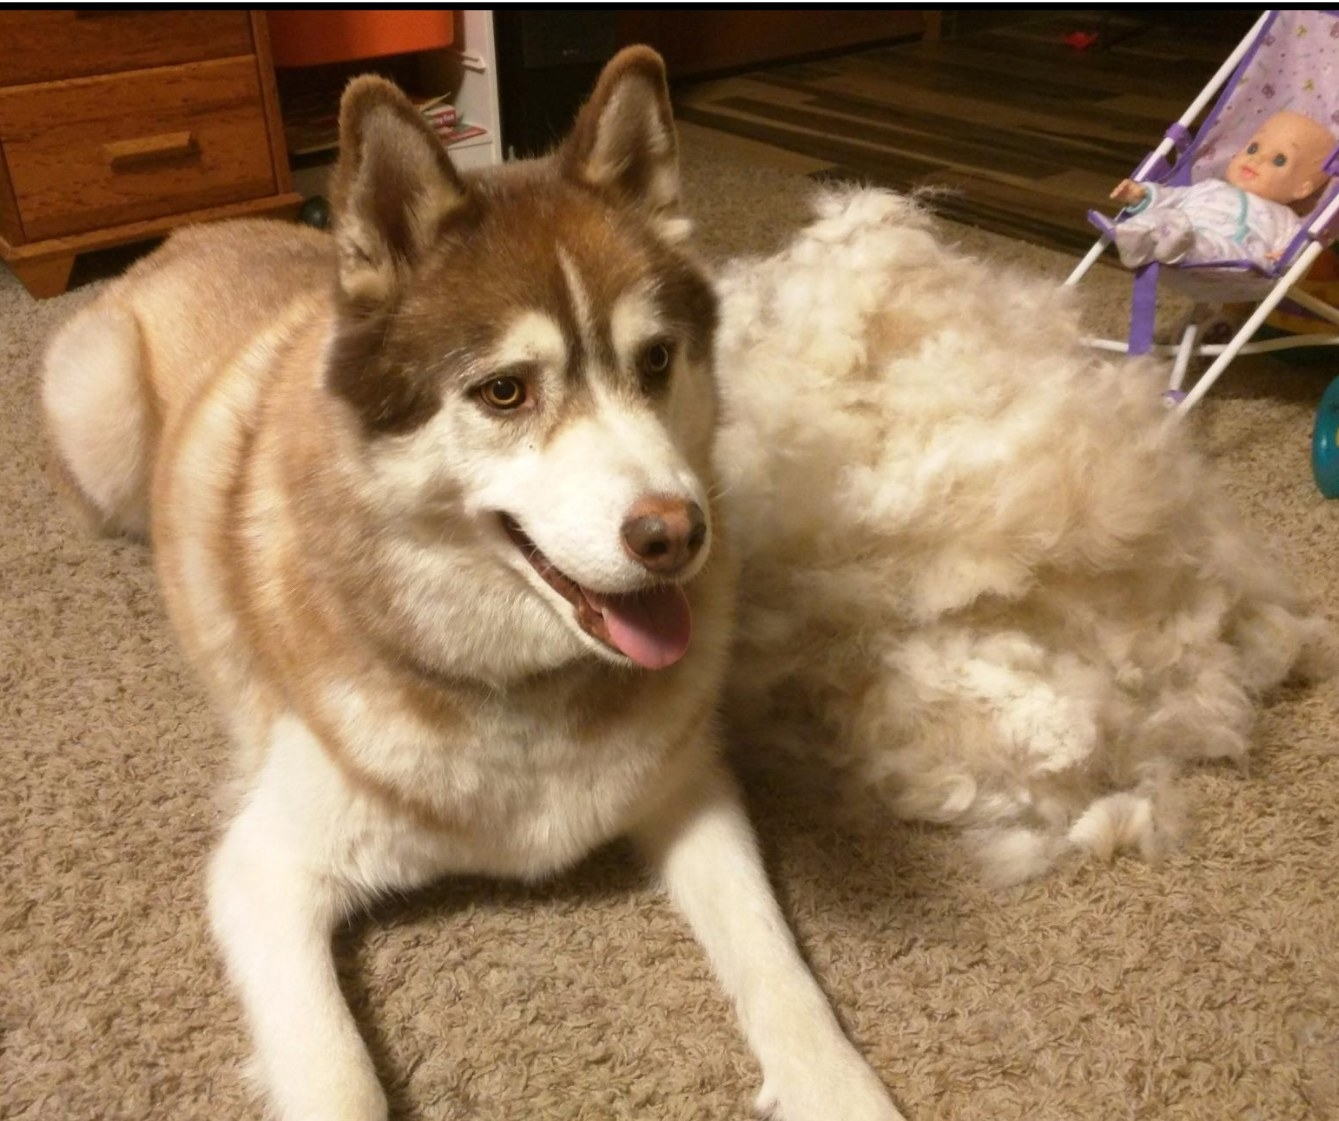 A husky next to a pile of fur removed from its coat with the FURminator